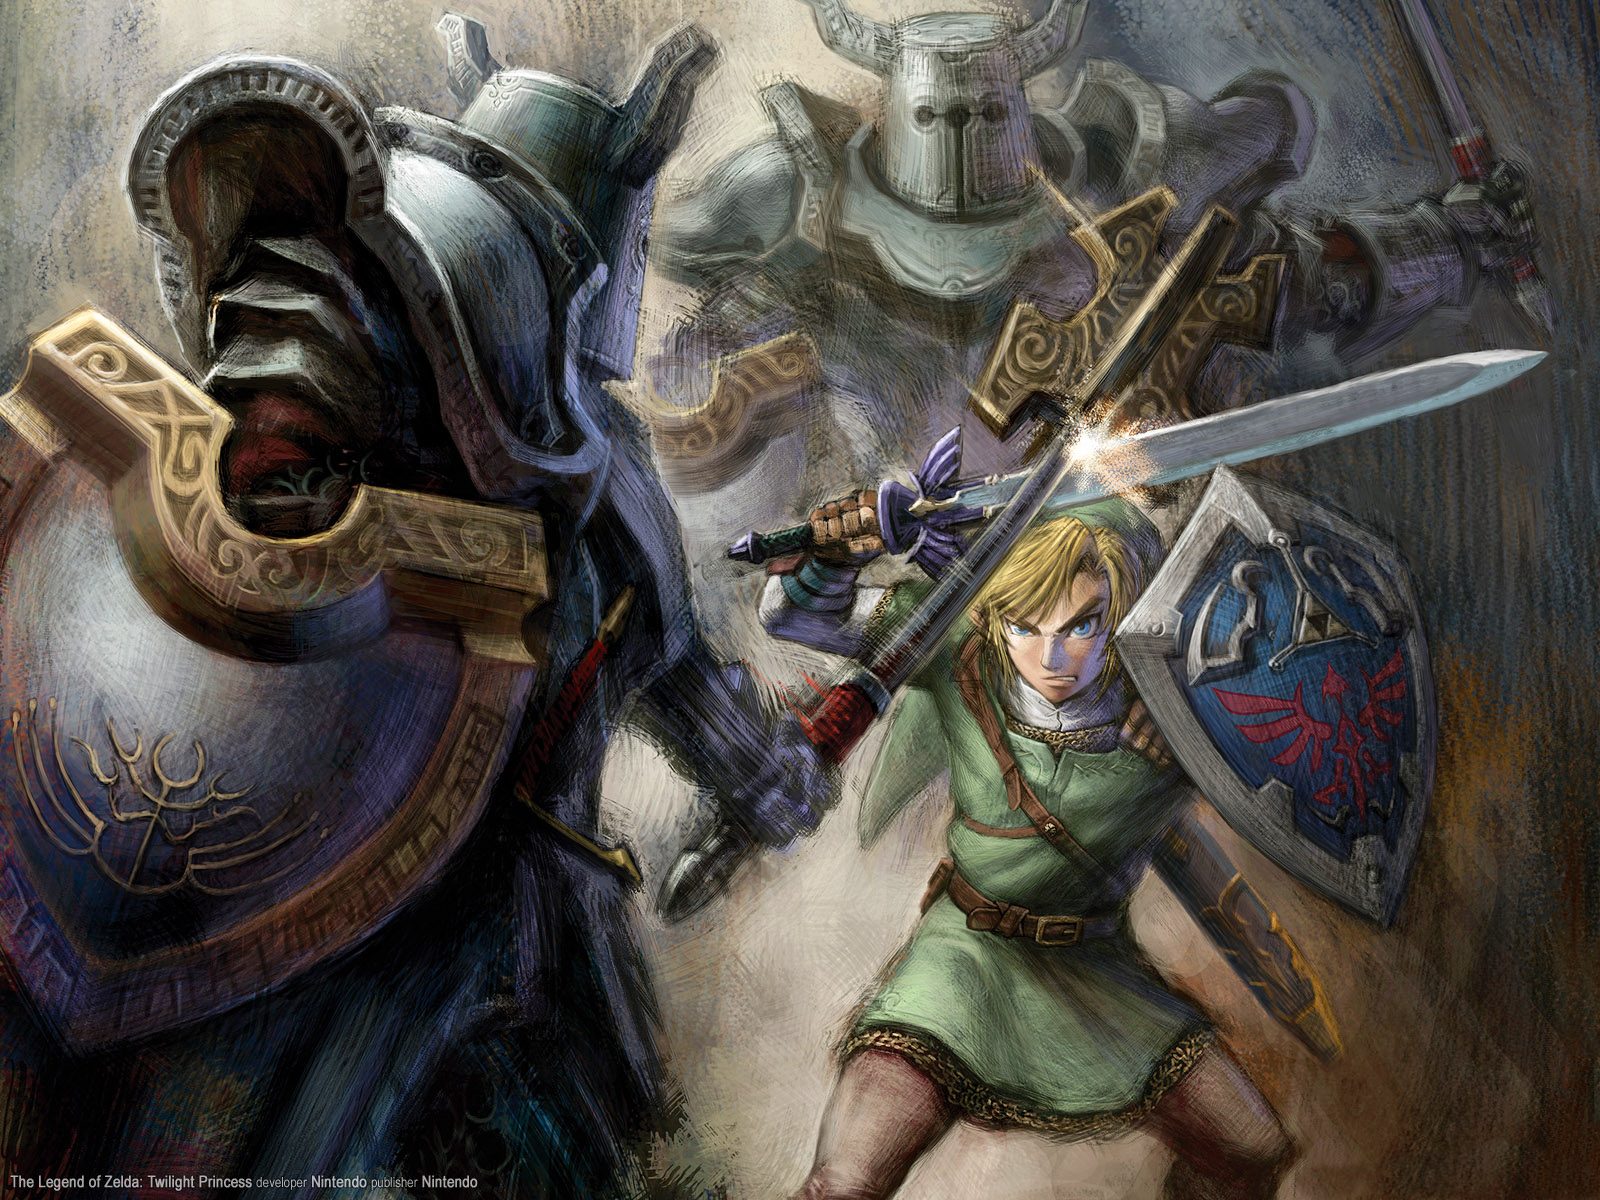 Background image vs img - The Legend Of Zelda Twilight Princess Link Fighting Knights Wallpaper Background Nintendo Img Image Picture Pic